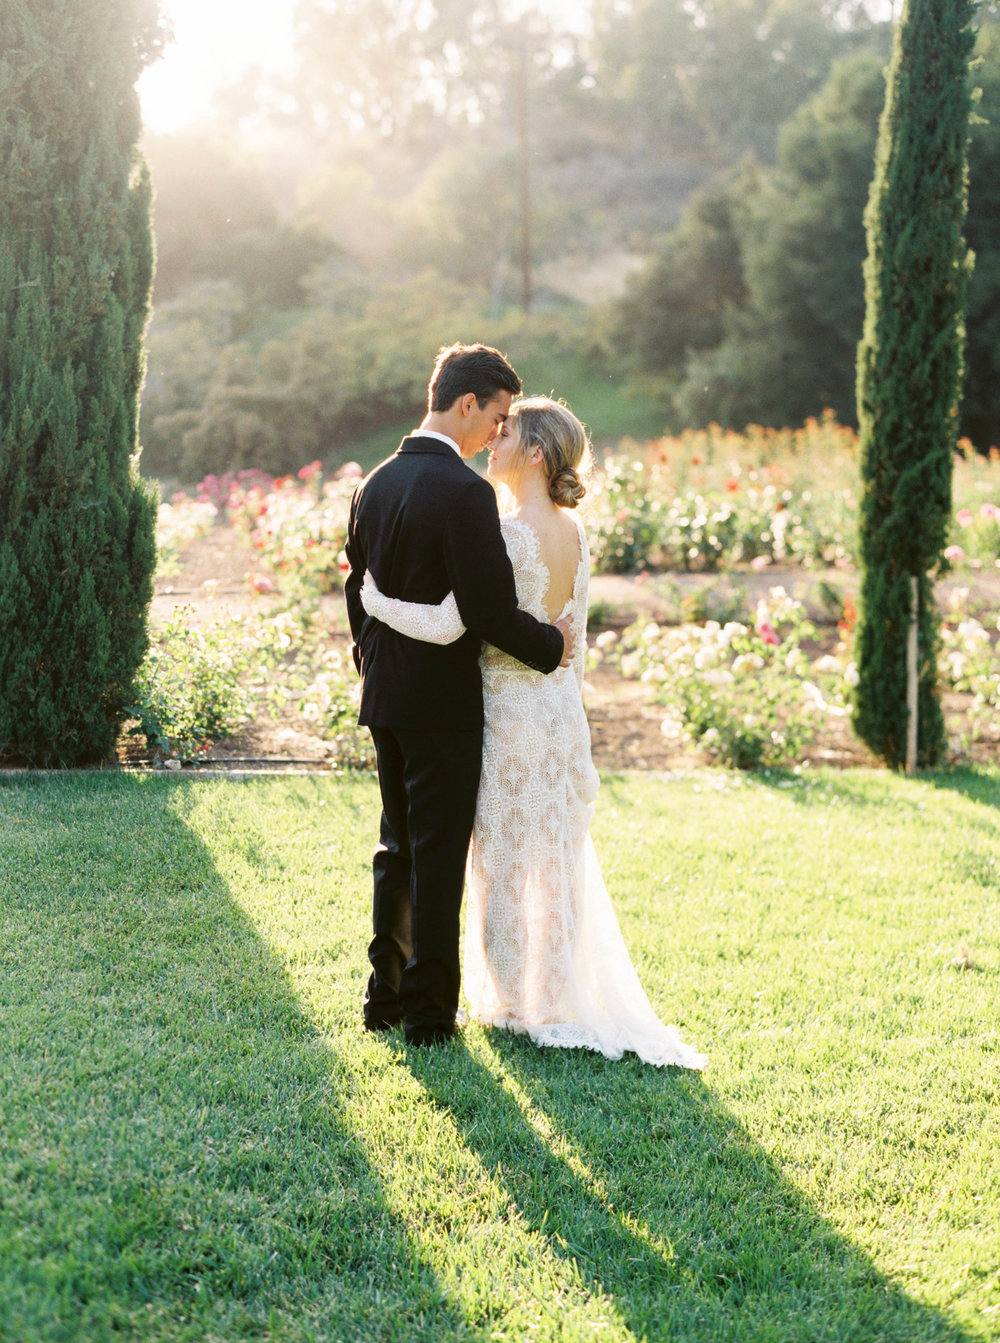 Meghan Mehan - California Wedding Photographer | Santa Barbara Wedding 012.jpg